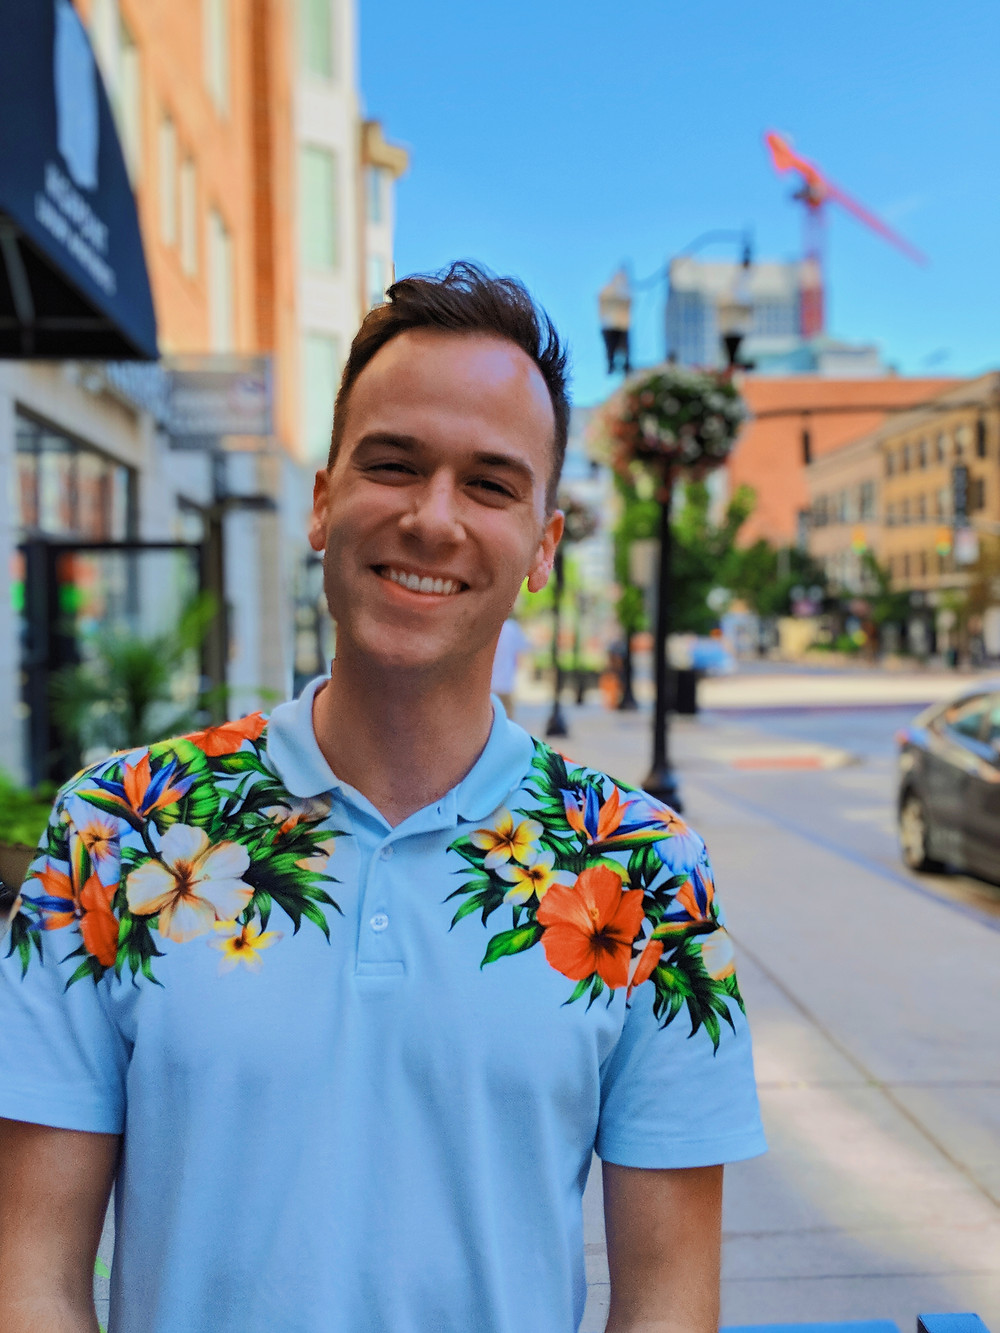 gay man smiling in tropical polo shirt